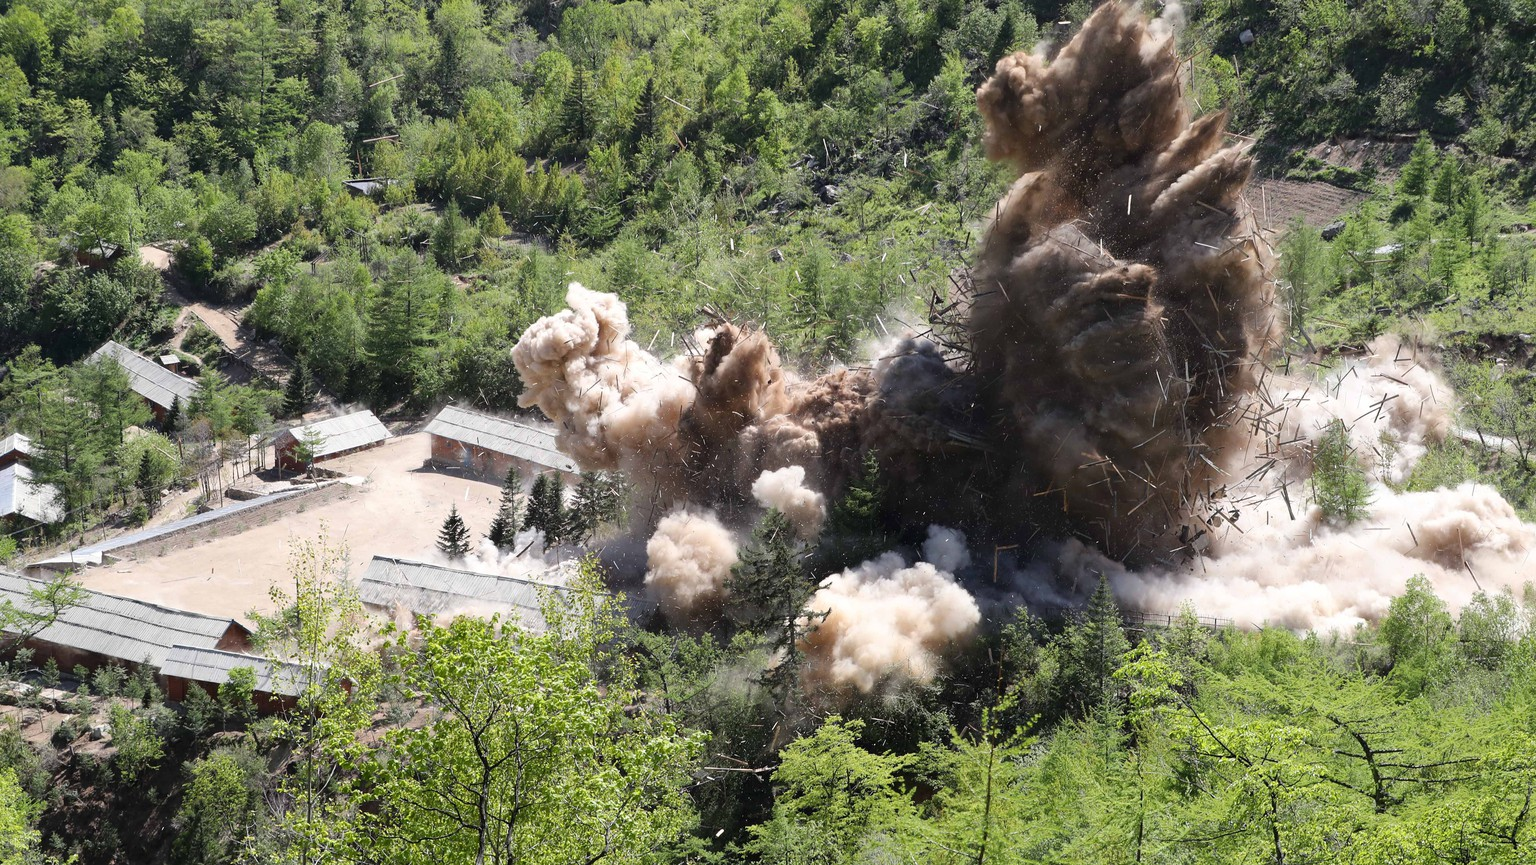 epa06761540 Earth is displaced during an explosion on the first day of dismantling at North Korea's Punggye-ri nuclear test site in Punggye-ri, North Korea, 24 May 2018 (issued 25 May 2018). On 24 May North Korea started to demolish its Punggye-ri nuclear test facility, in the country's northeast. South Korean journalists covering the process said the demolition of the site was carried out in a series of explosions over several hours on the day.  EPA/NEWS 1 KOREA SOUTH KOREA OUT